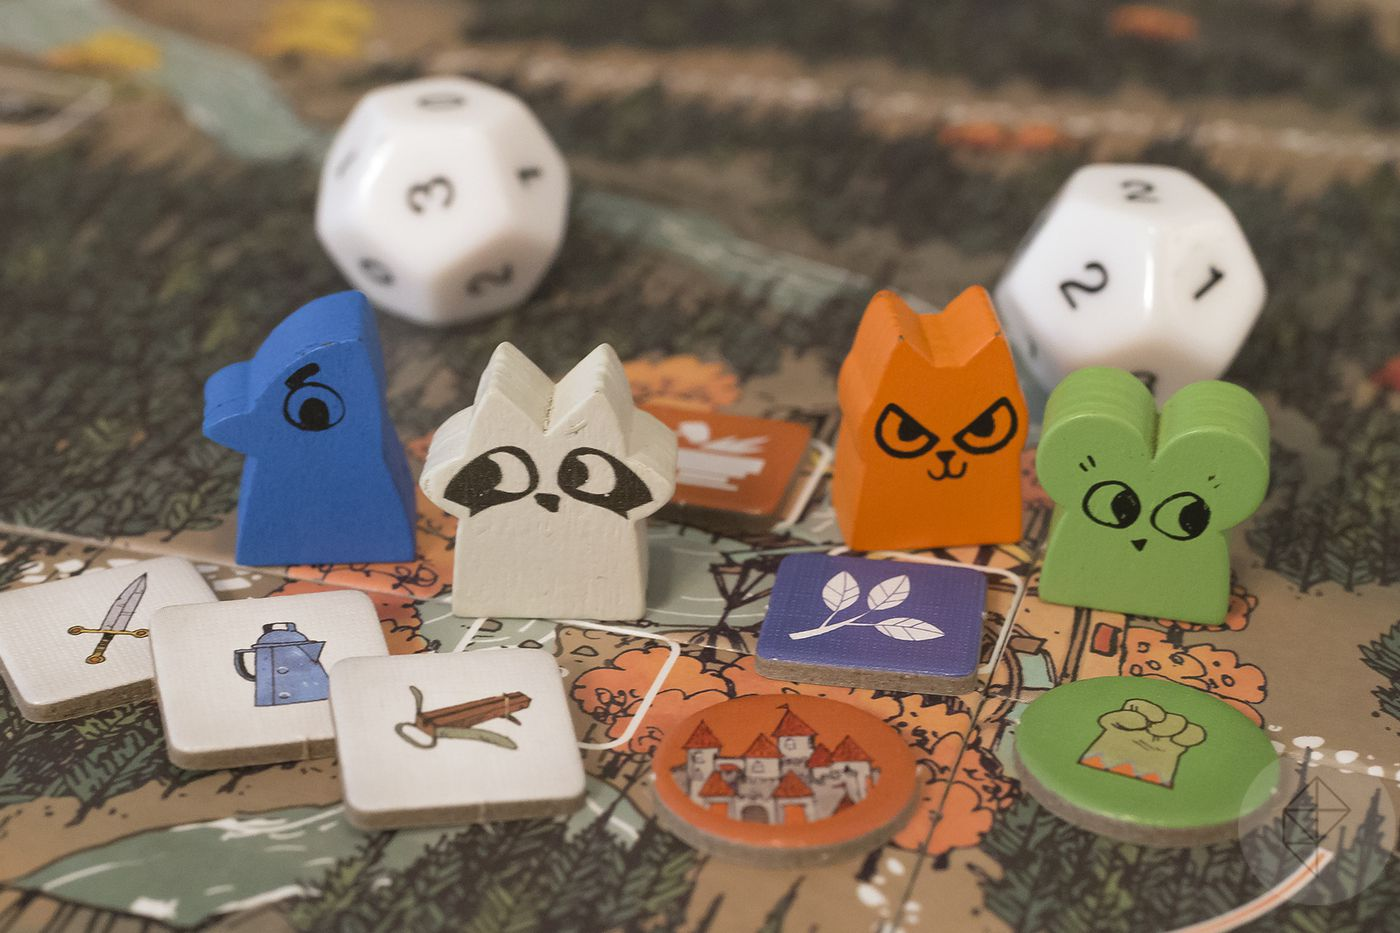 The Best Strategy Board Games For Adults Polygon